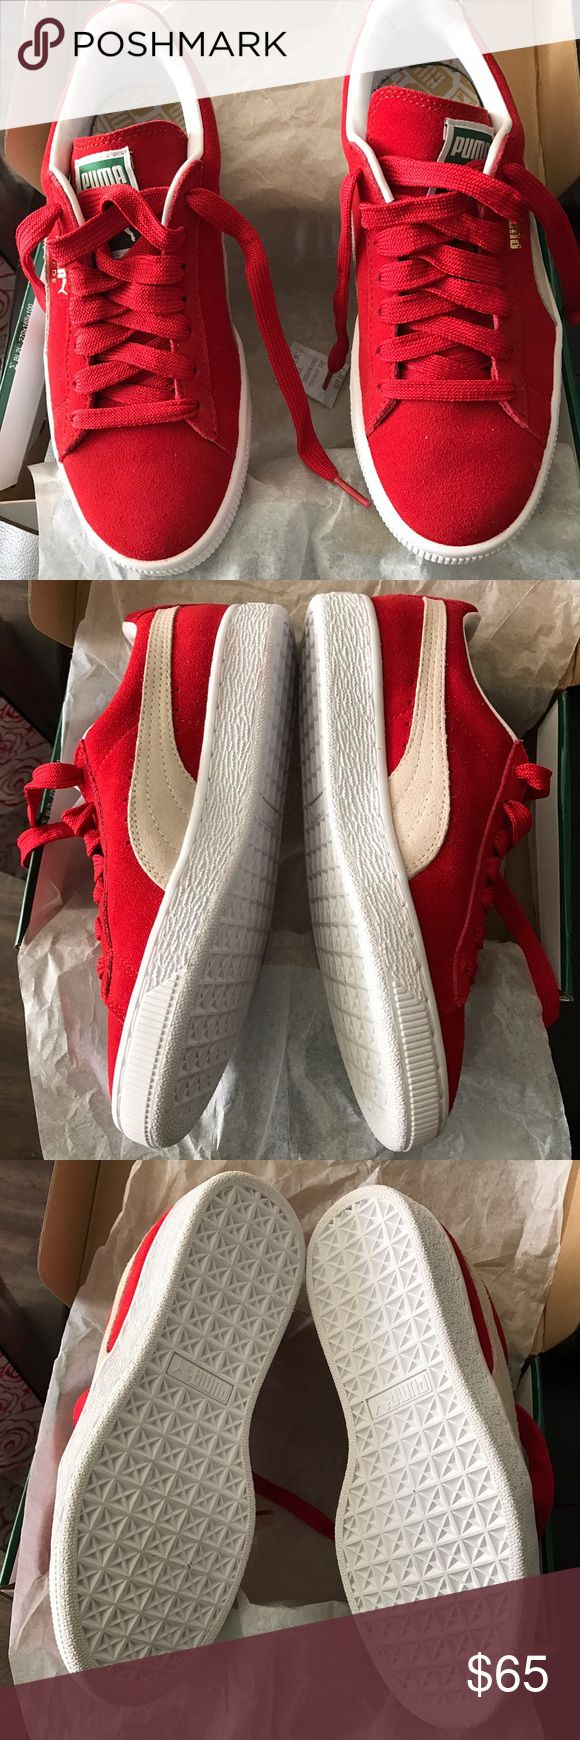 🛑2 Hour Sale🛑PUMA SHOES PUMA SHOES...Brand new in box. Red suede sz. 6, item exactly as pictured. No trades, thank you. Puma Shoes Sneakers